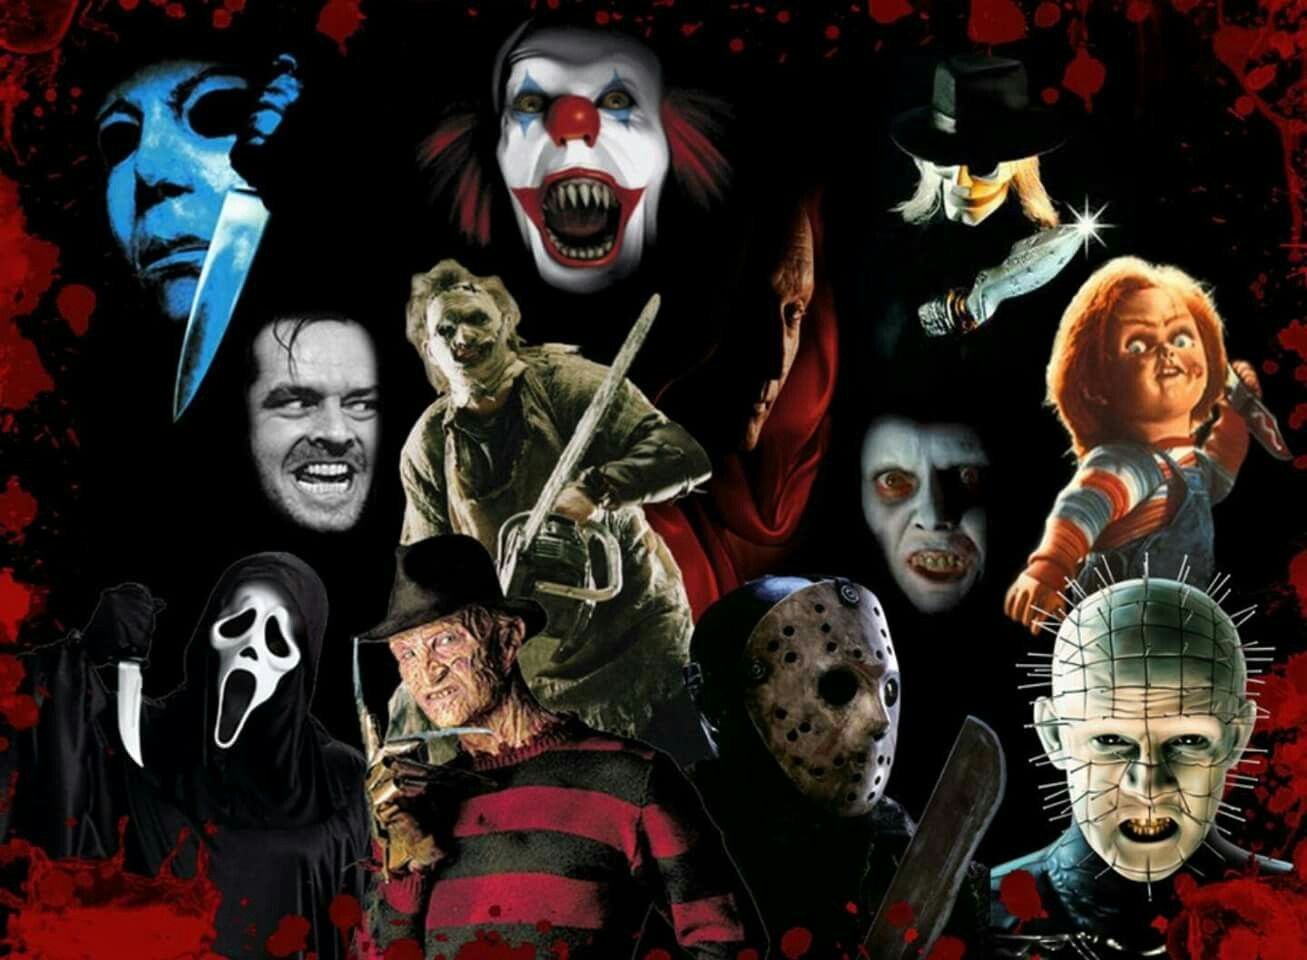 Pin By HORROR AND MORE HORROR On HORROR COLLAGE'S